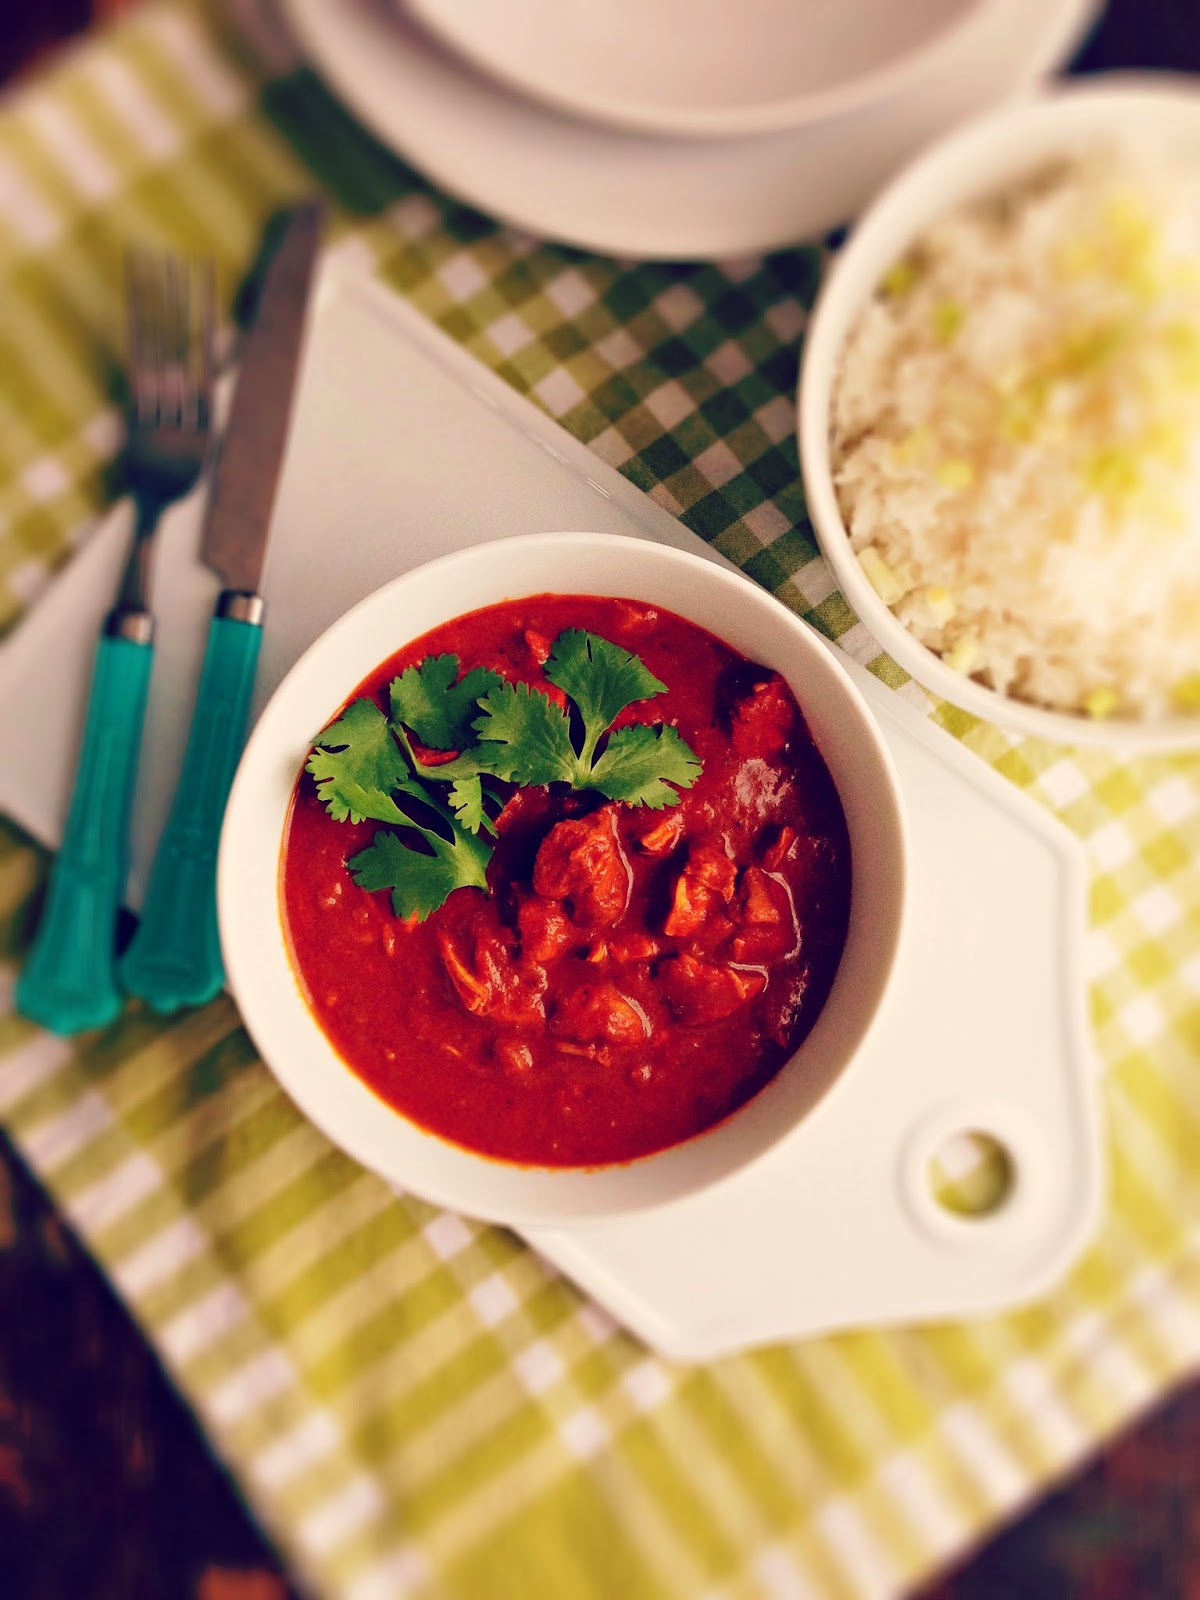 sweetsugarbean: DIY Takeout: Slow Cooker Butter Chicken